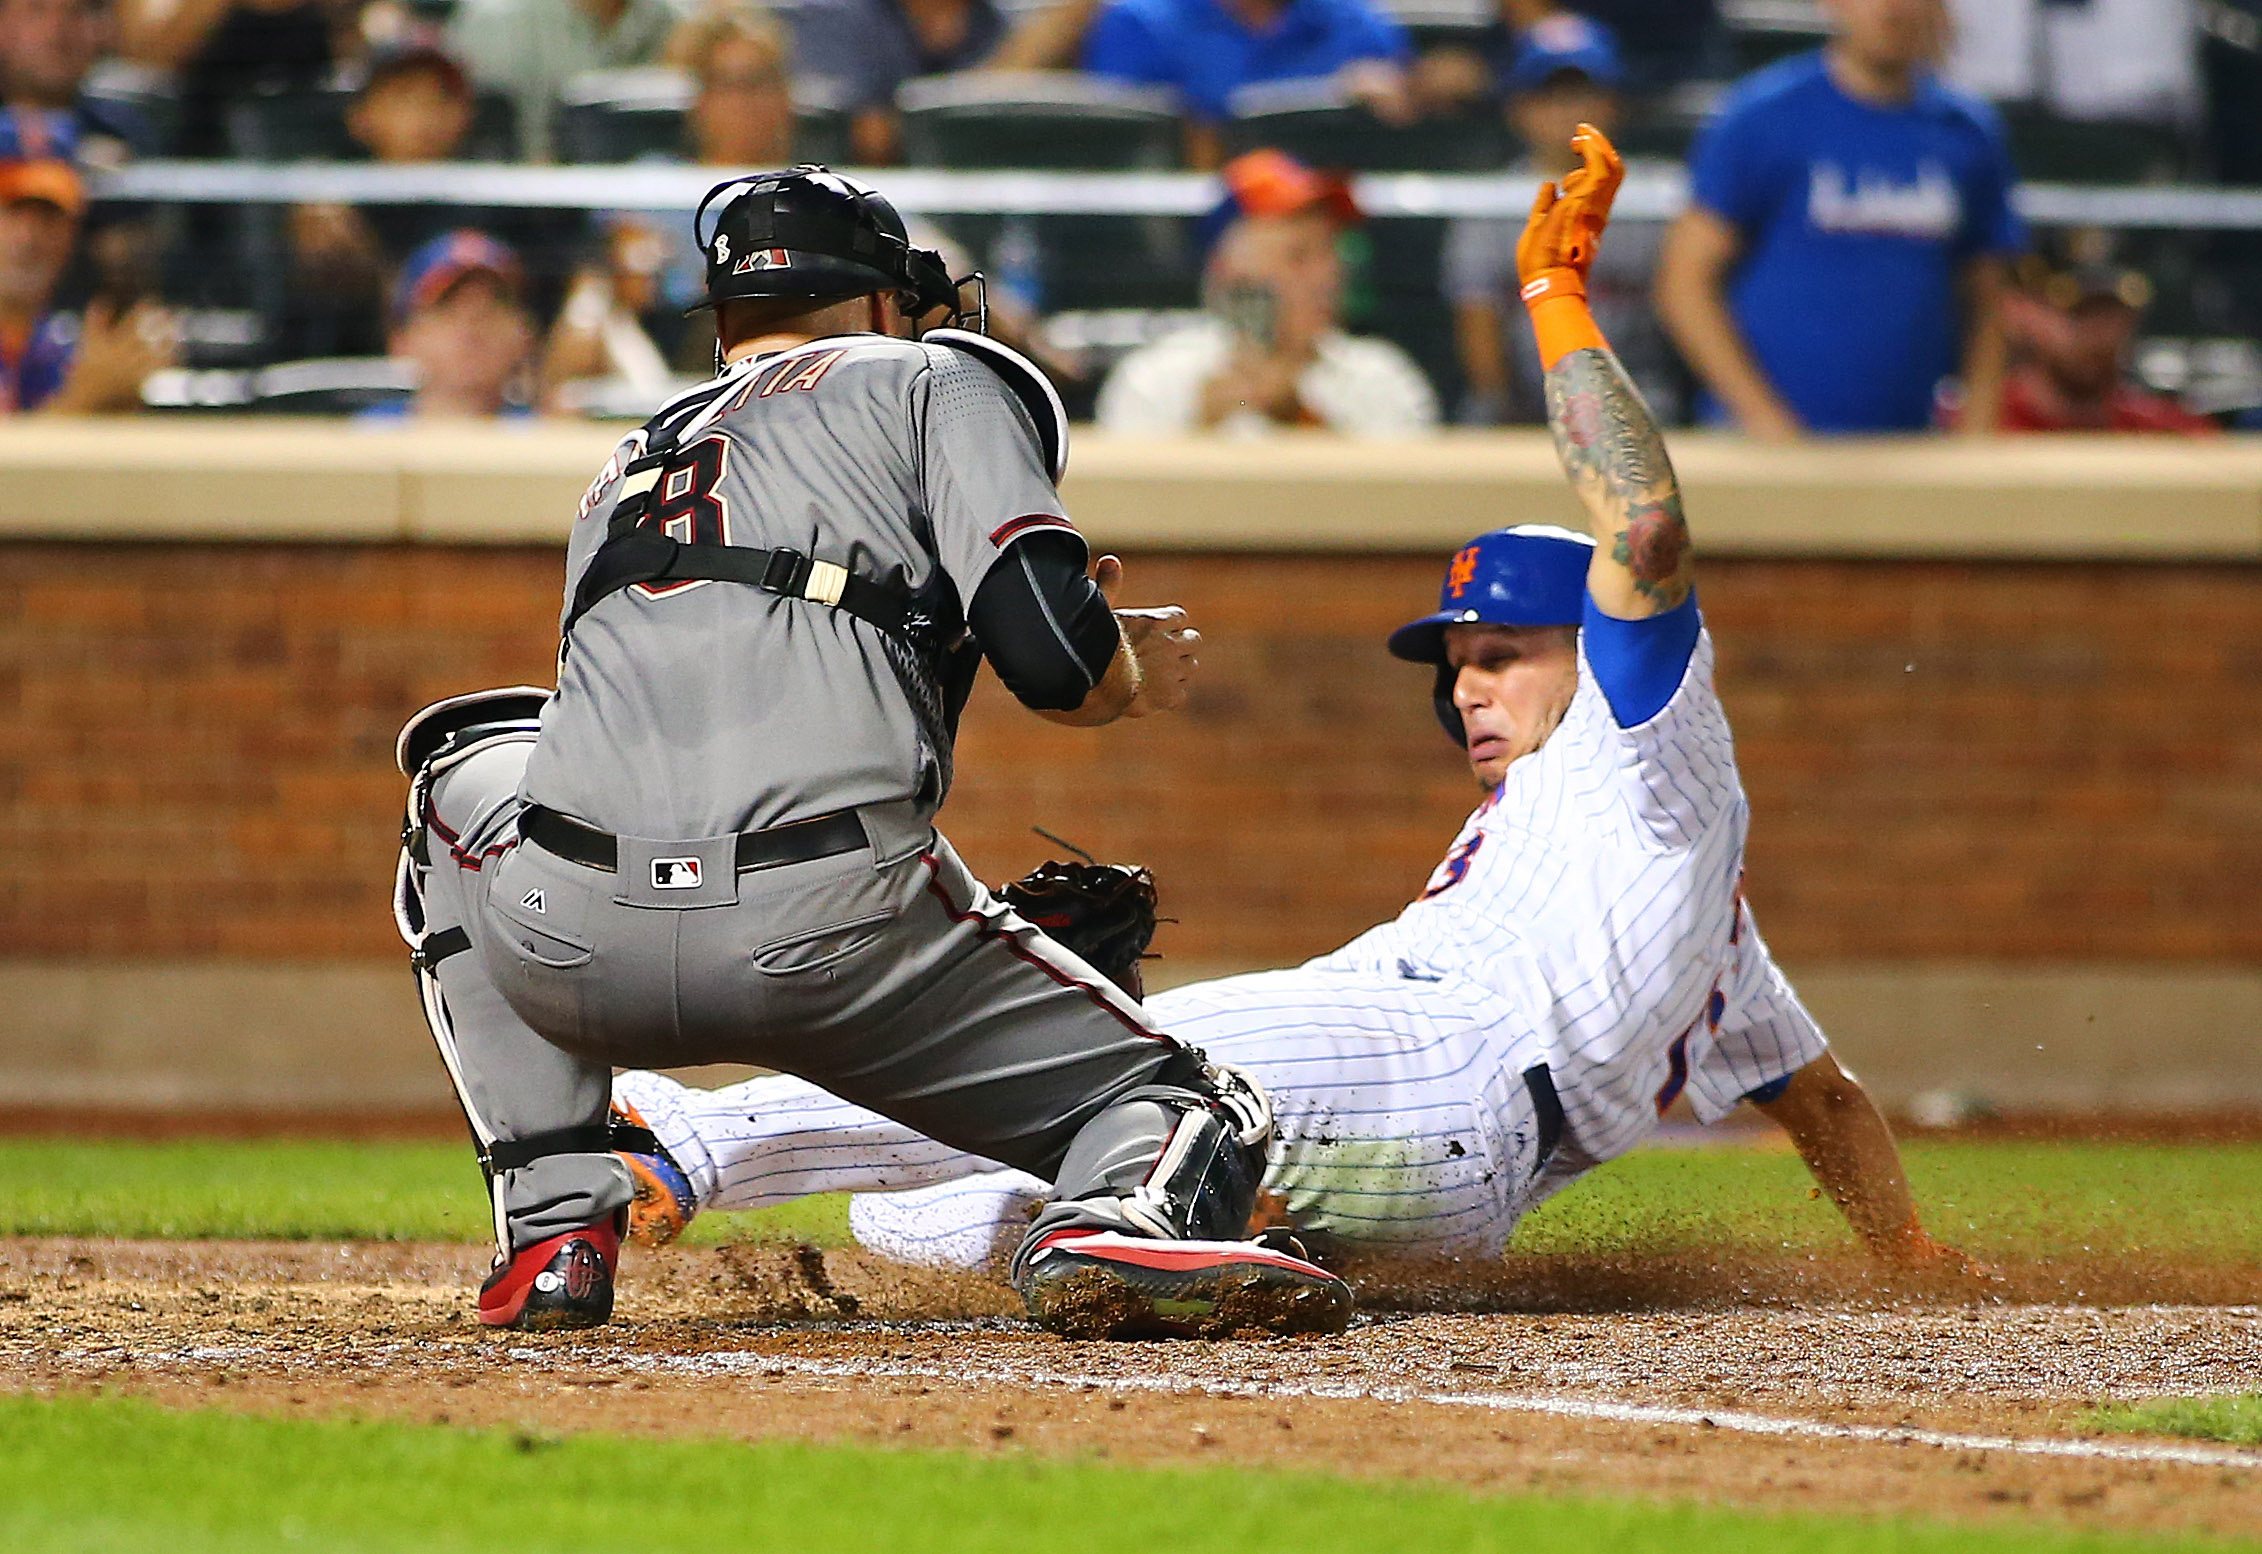 MLB: Arizona Diamondbacks at New York Mets